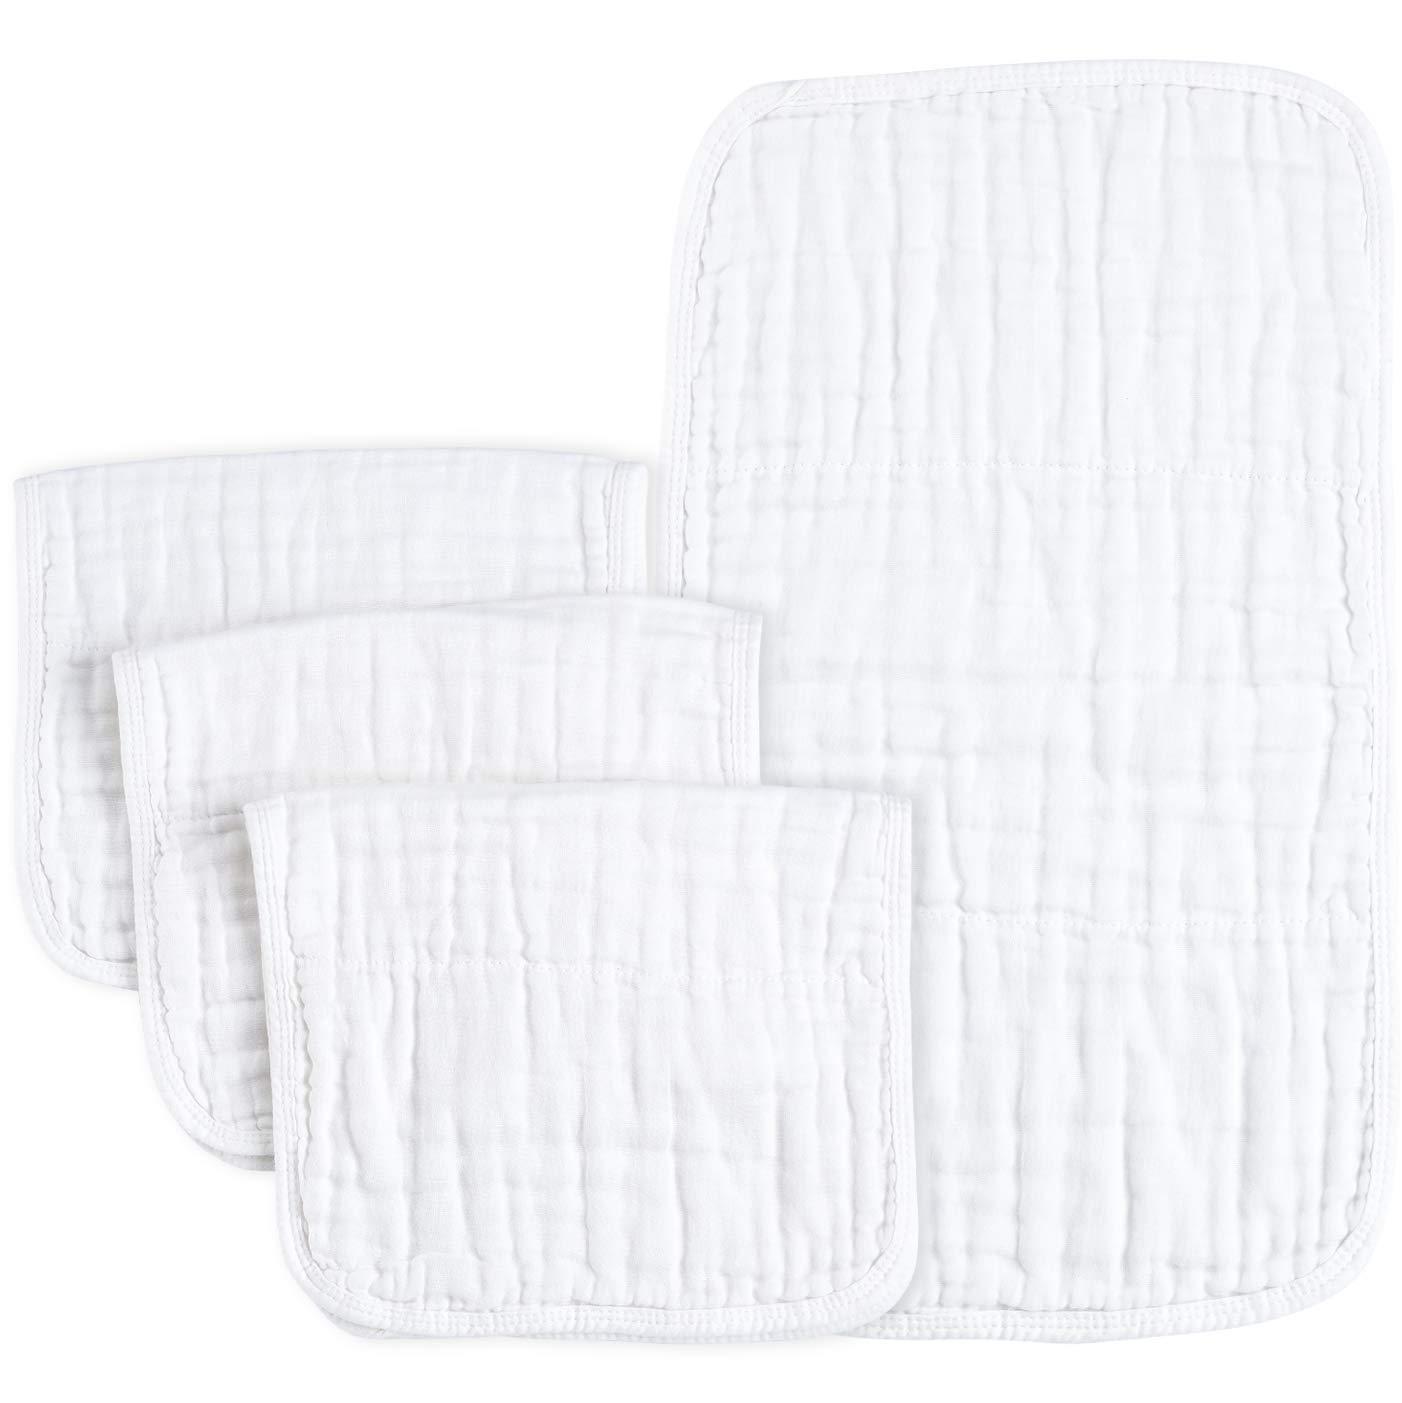 PPOGOO Muslin Burp Cloths 100% Cotton, White, 4 Pack, Large 21''x10'', 6 Layers Soft and Absorbent